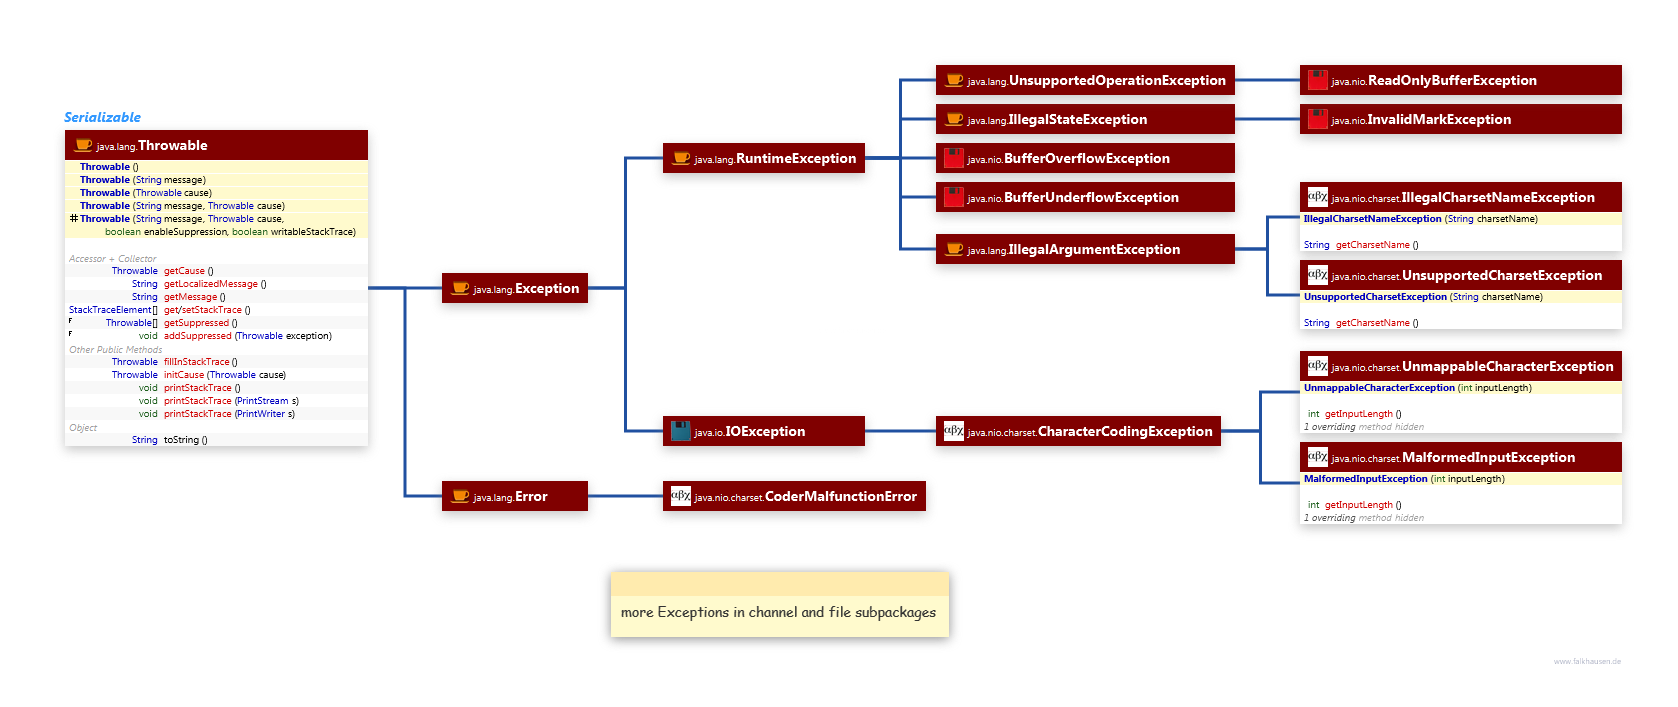 java.nio.channels Exceptions class diagram and api documentation for Java 8